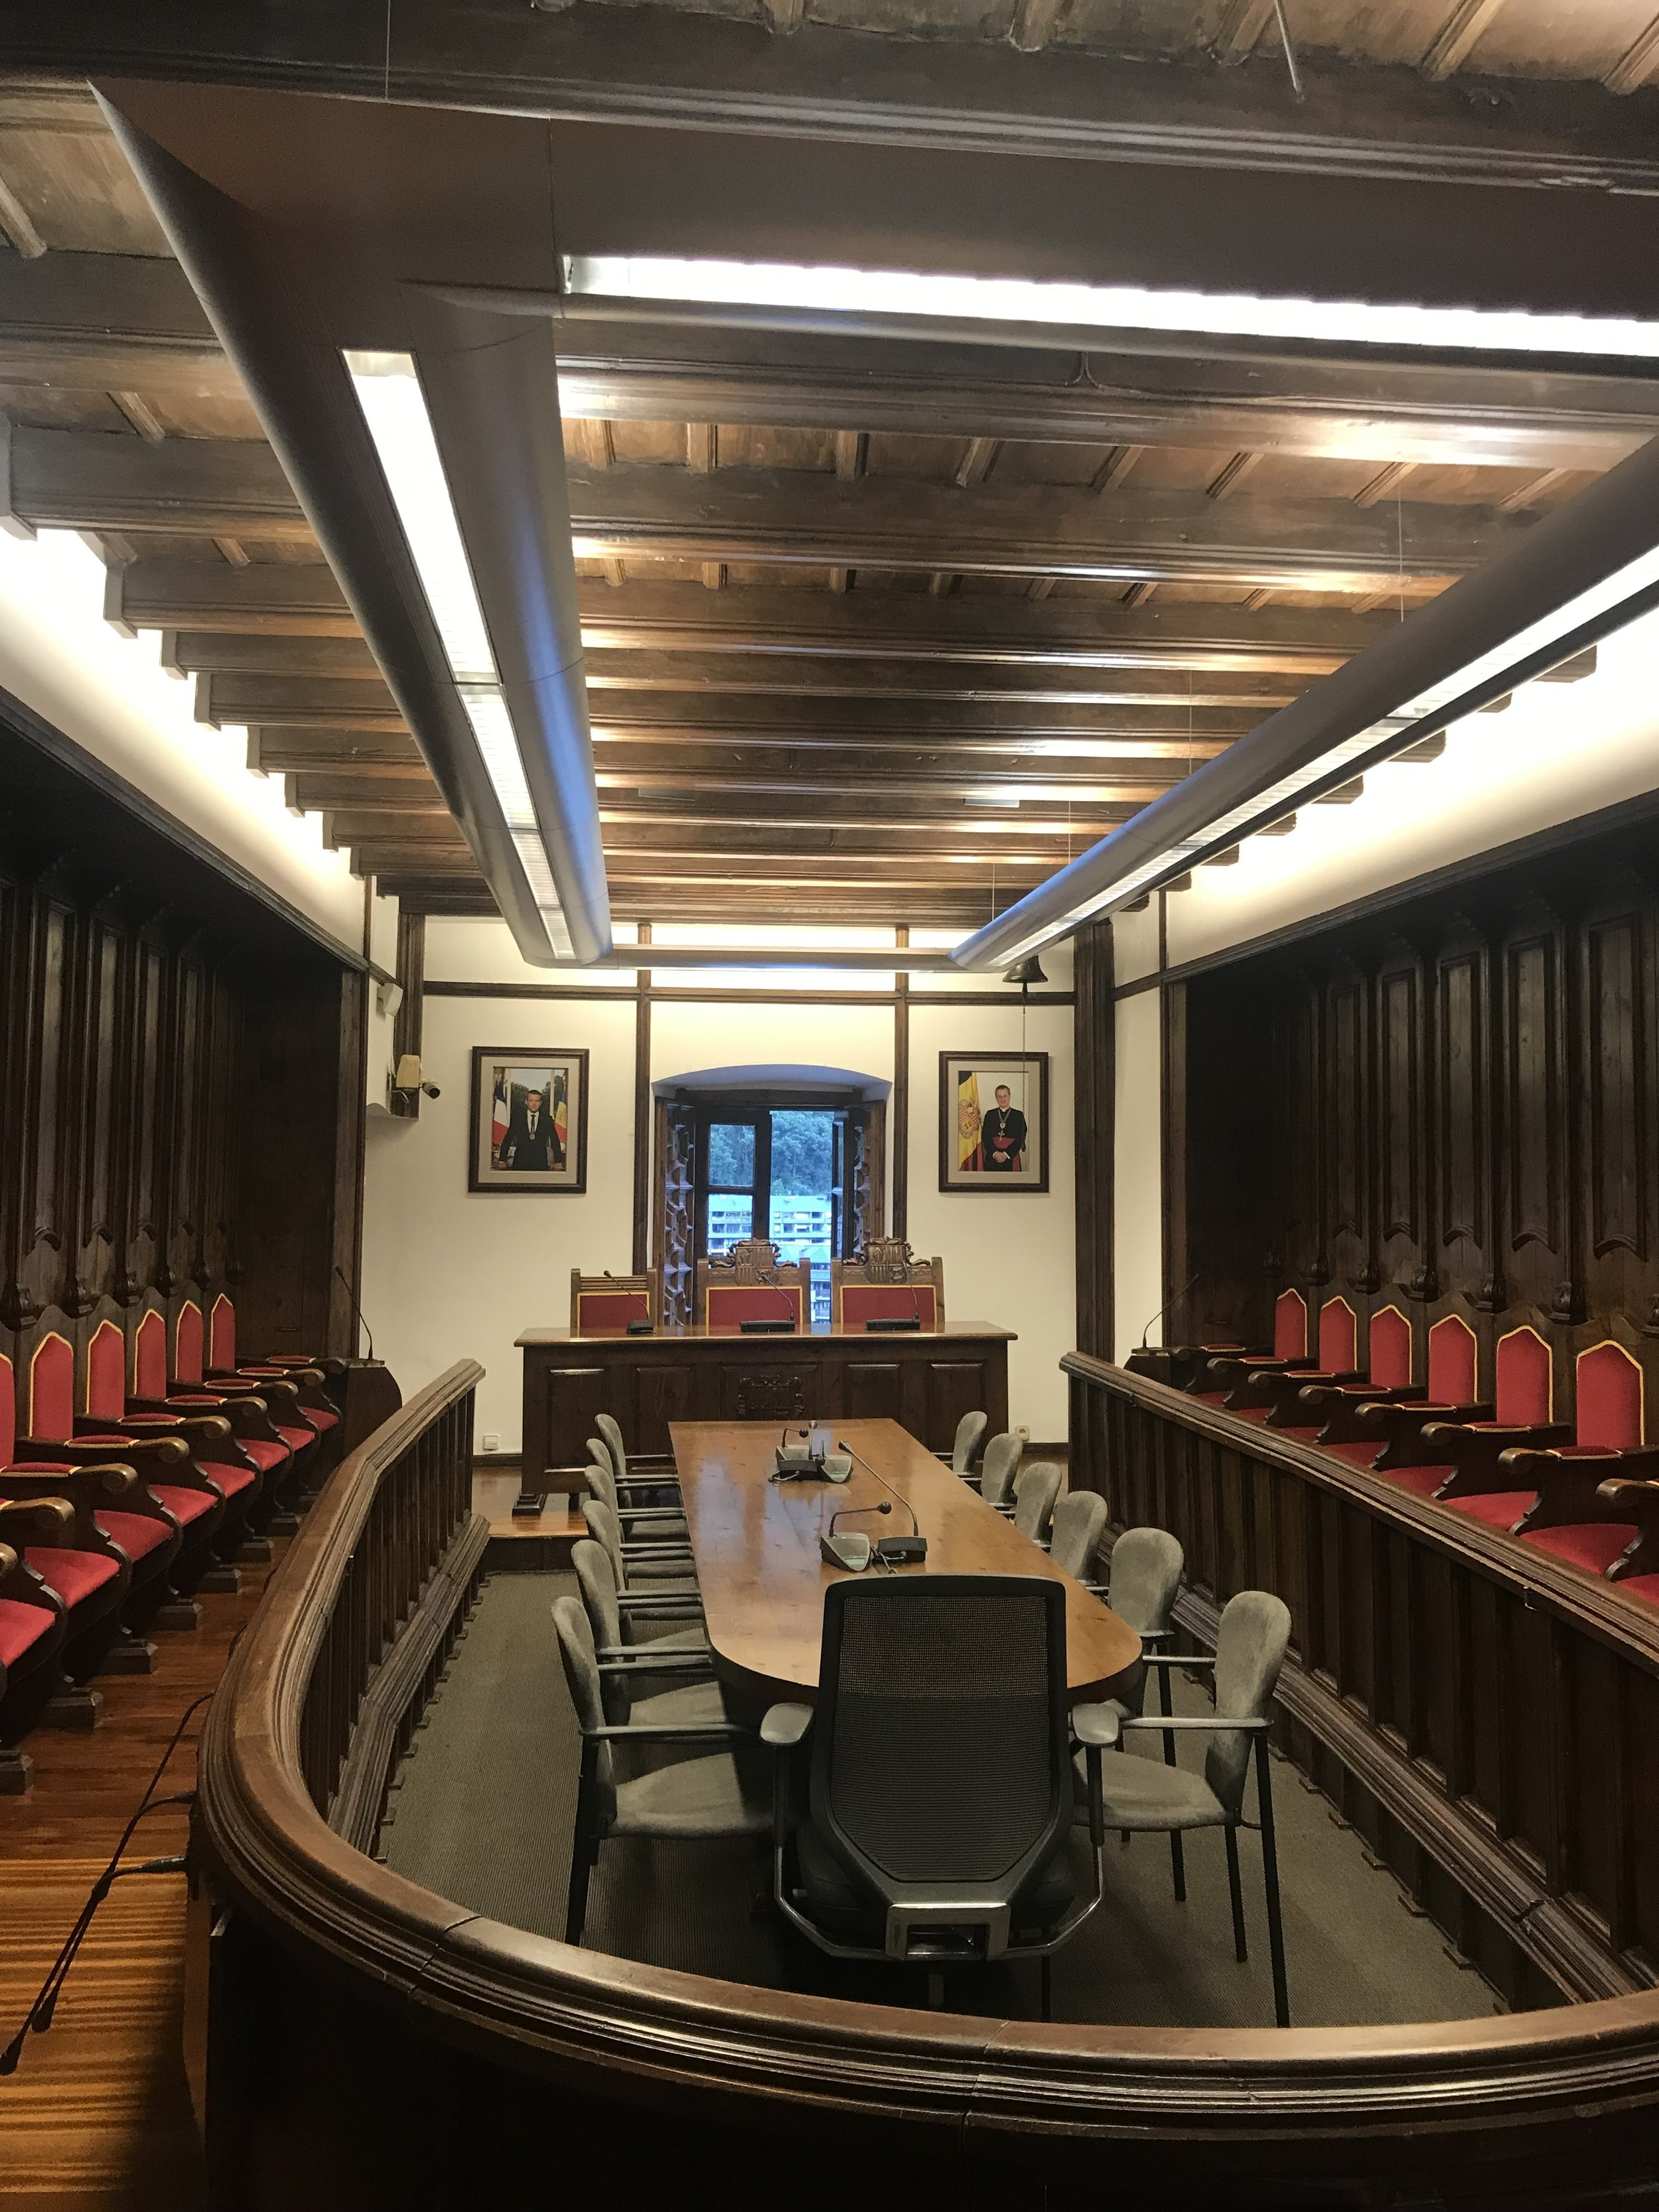 The Old Andorran Parliament